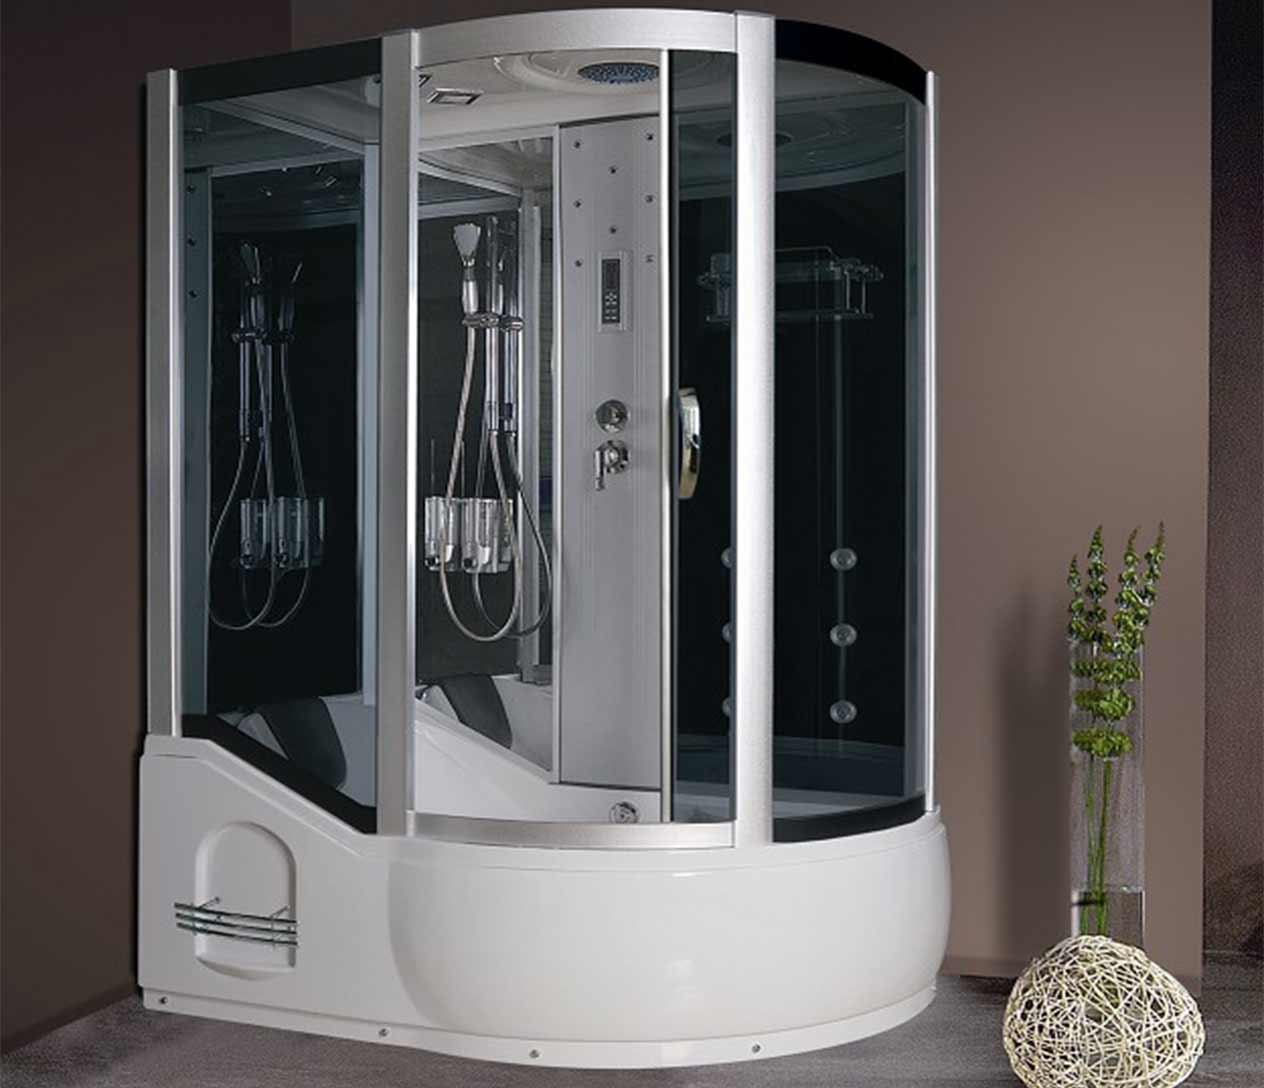 ax 725 steam shower l - Luxury Steam Showers